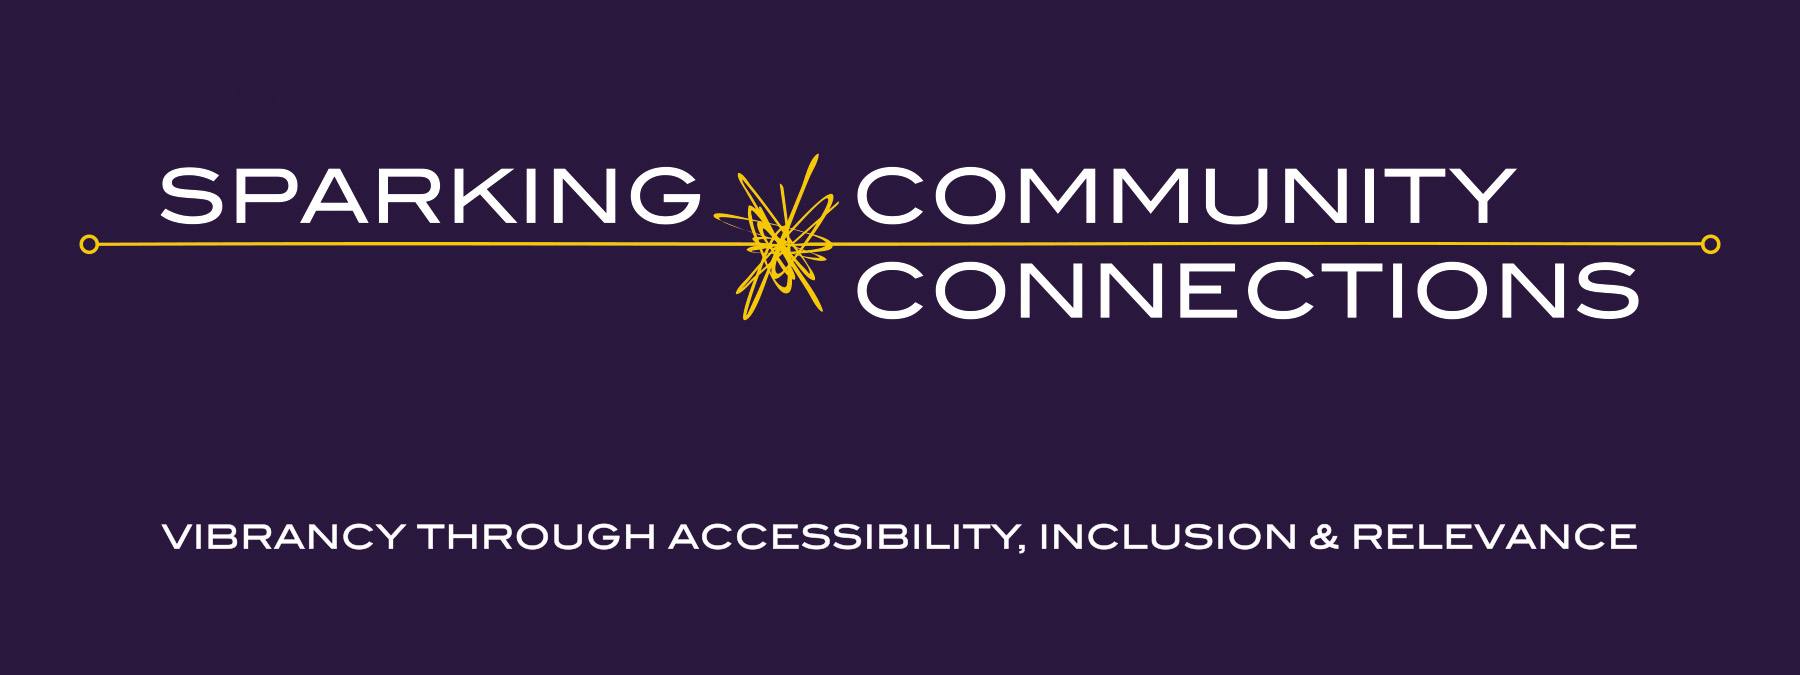 Sparking Community Connections: Vibrancy through Accessibility, Inclusion & Relevance